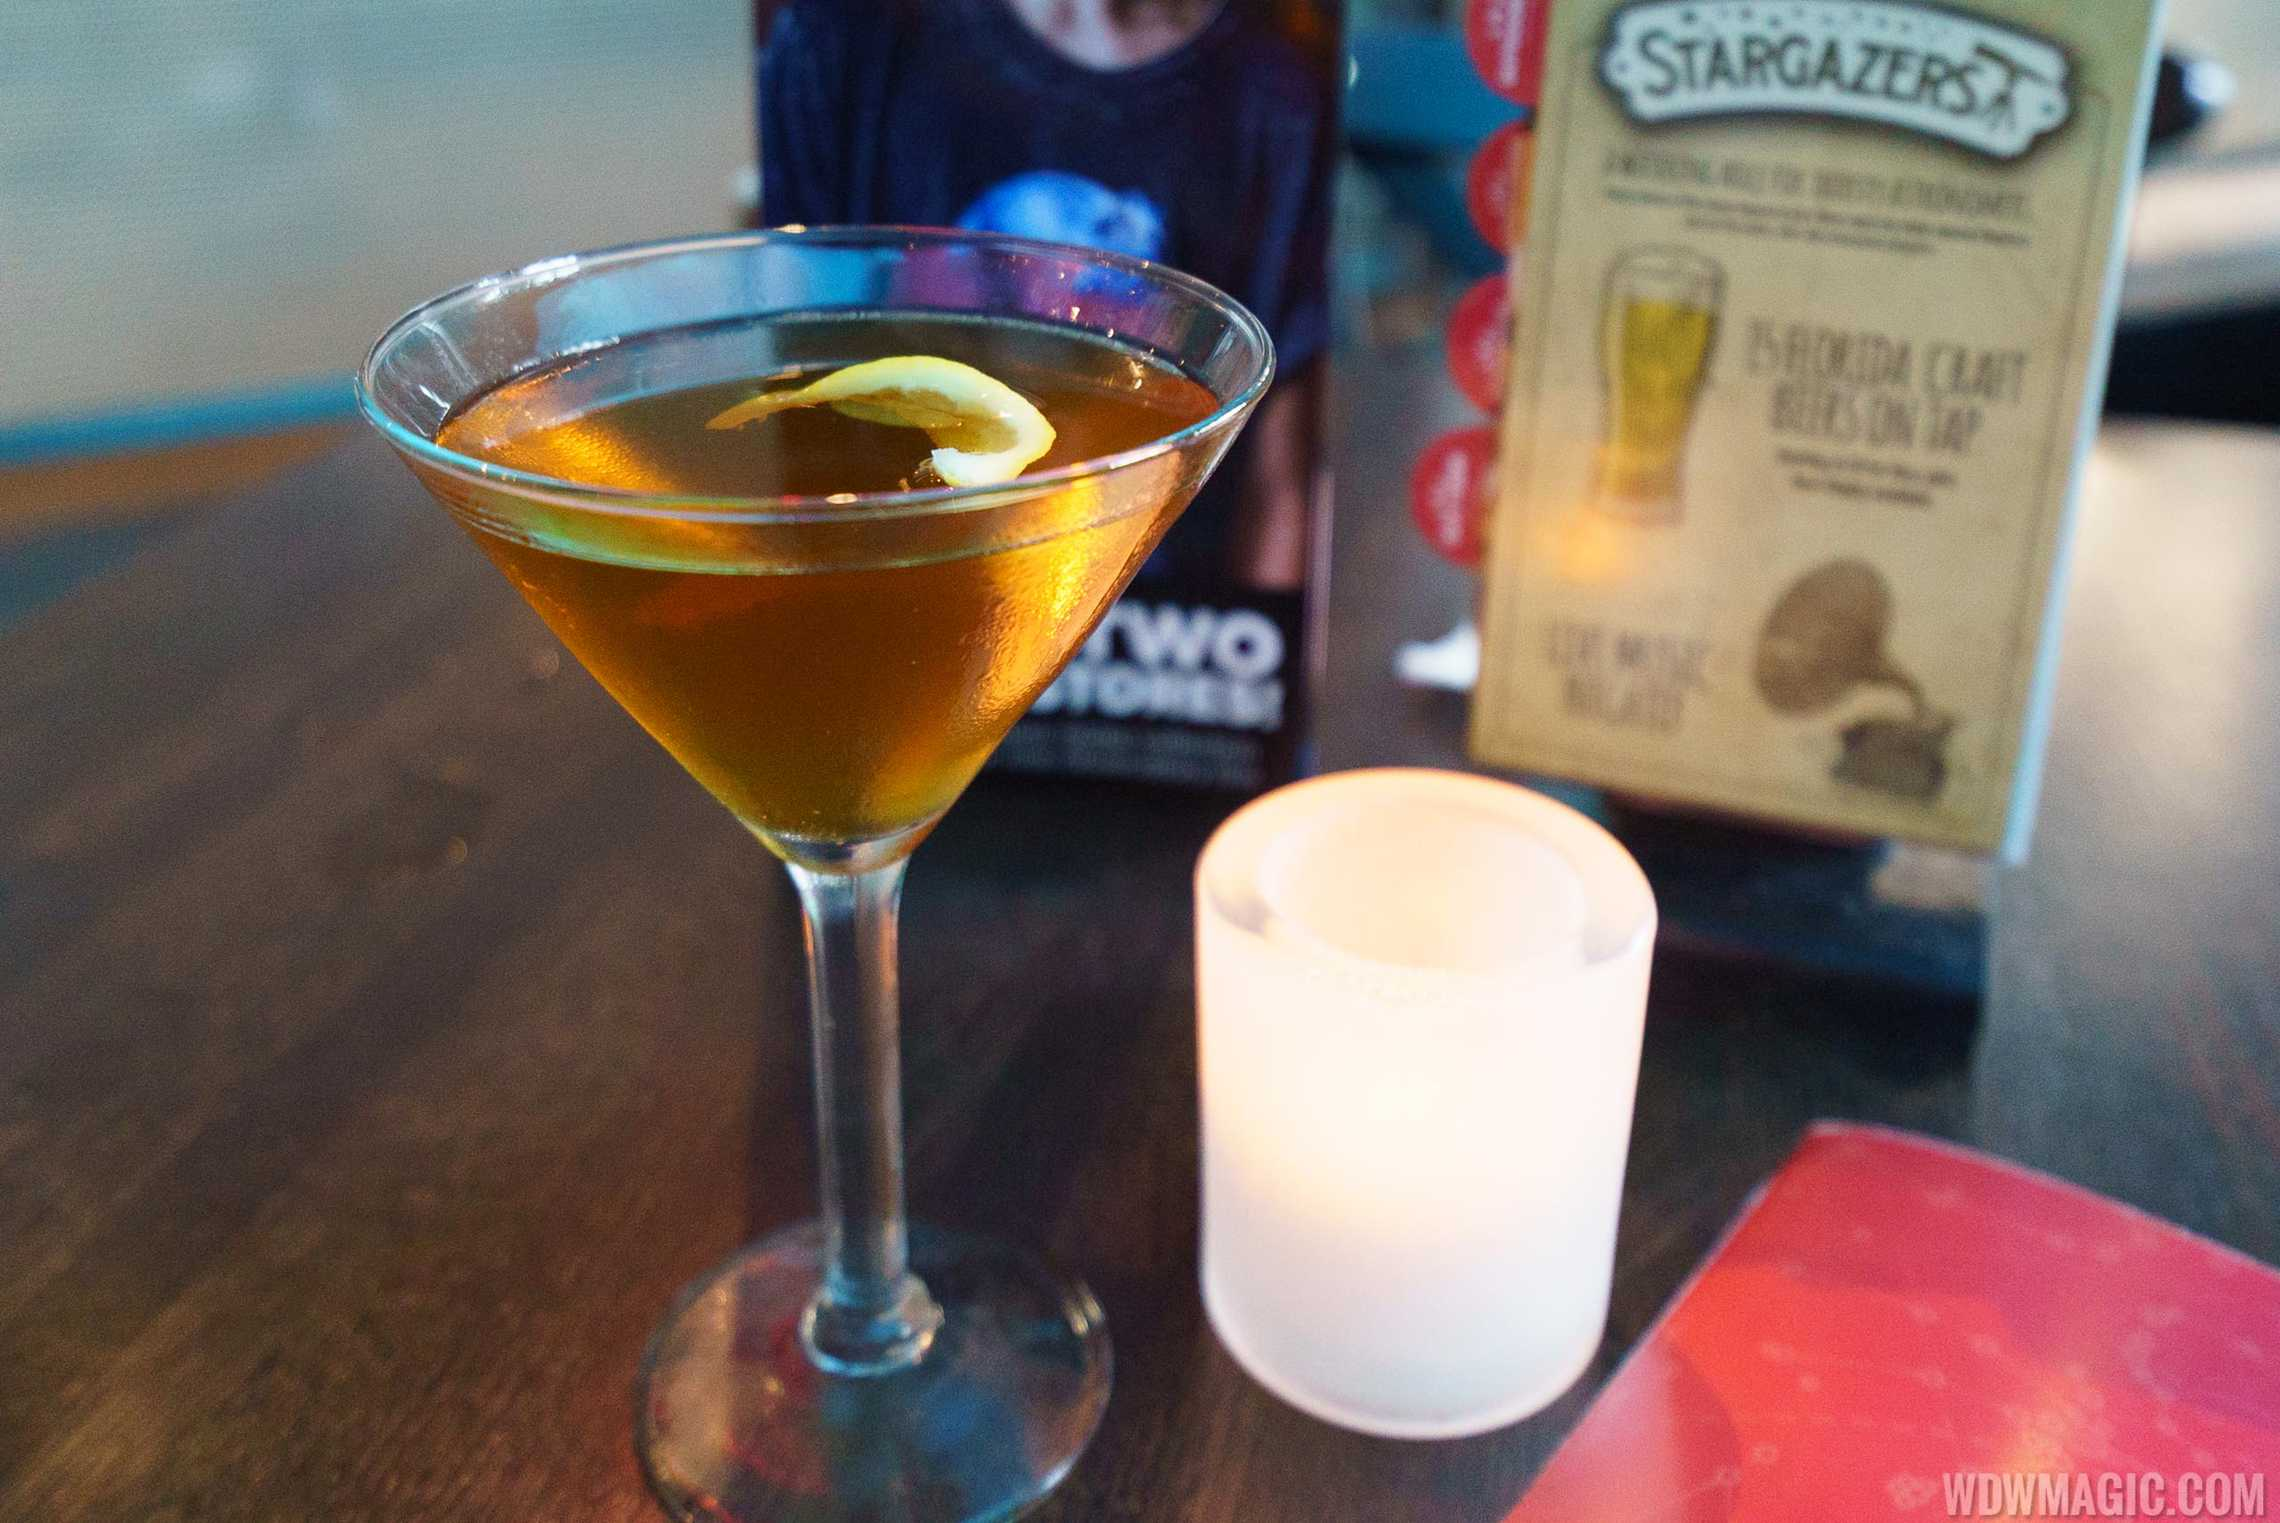 The Observatory - $12 Stoli Vodka, Limoncino Bottega,  Monin Peach Tea and Candoni Prosecco